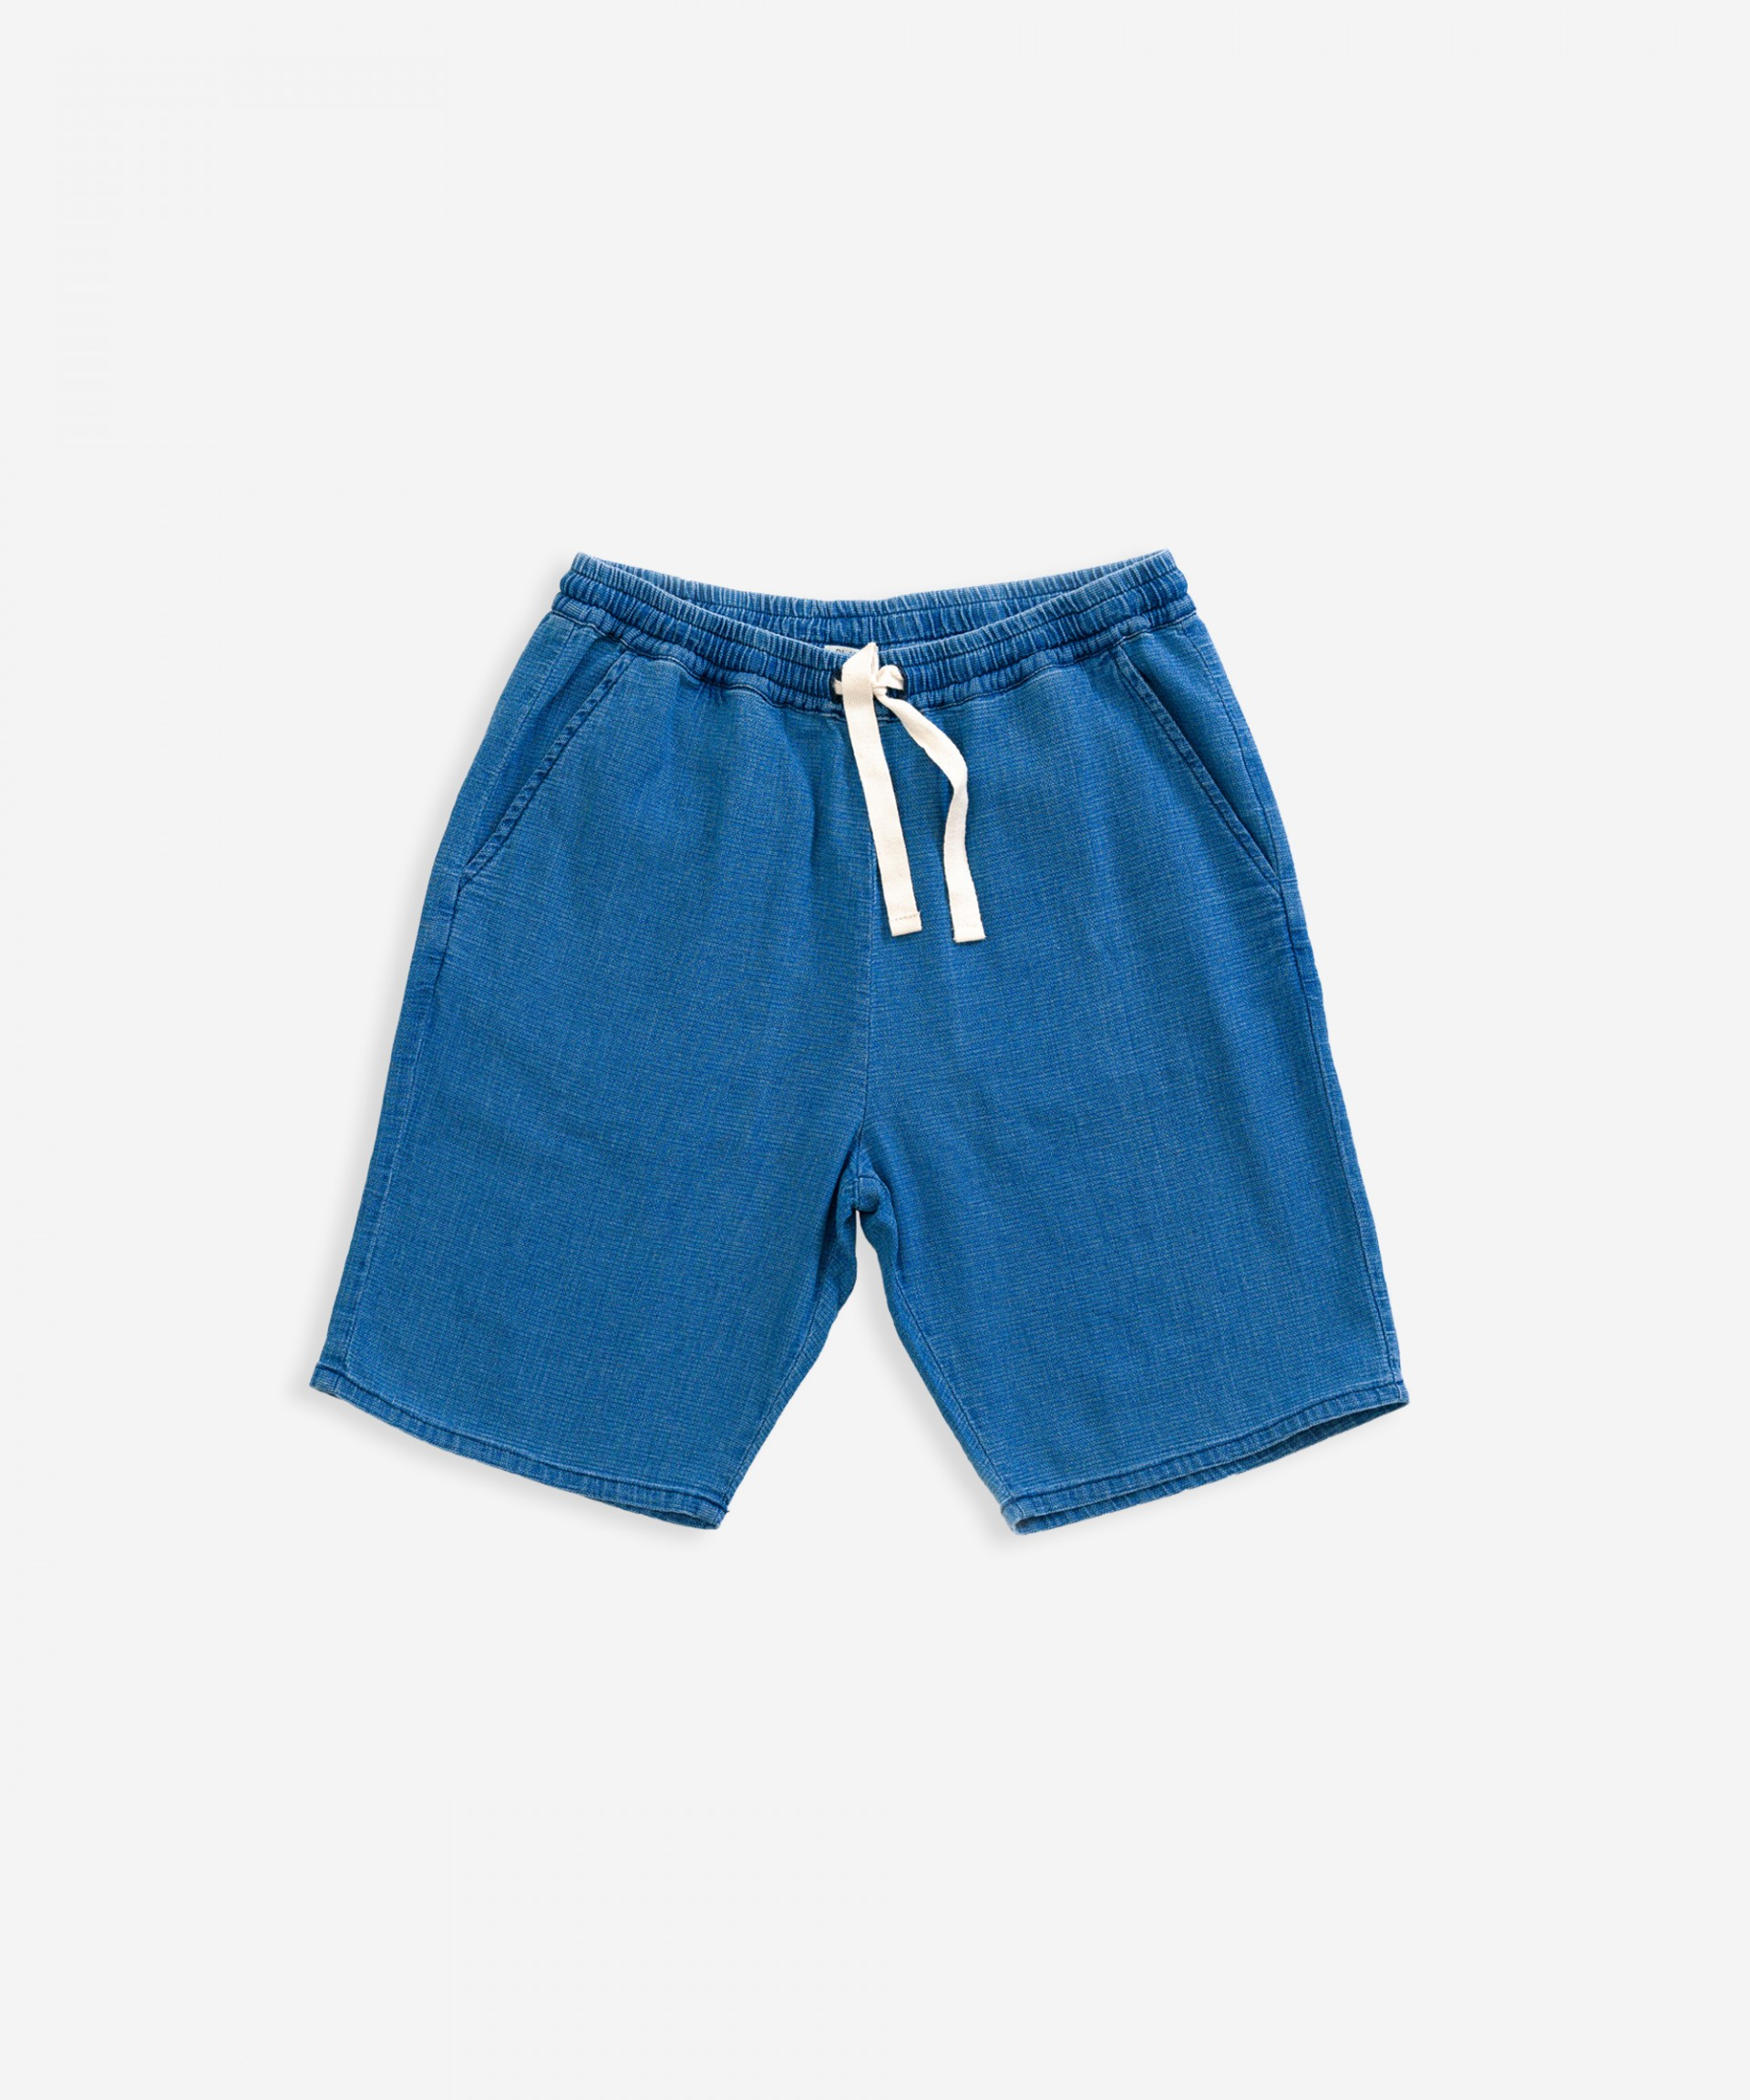 Denim shorts with pockets | Weaving